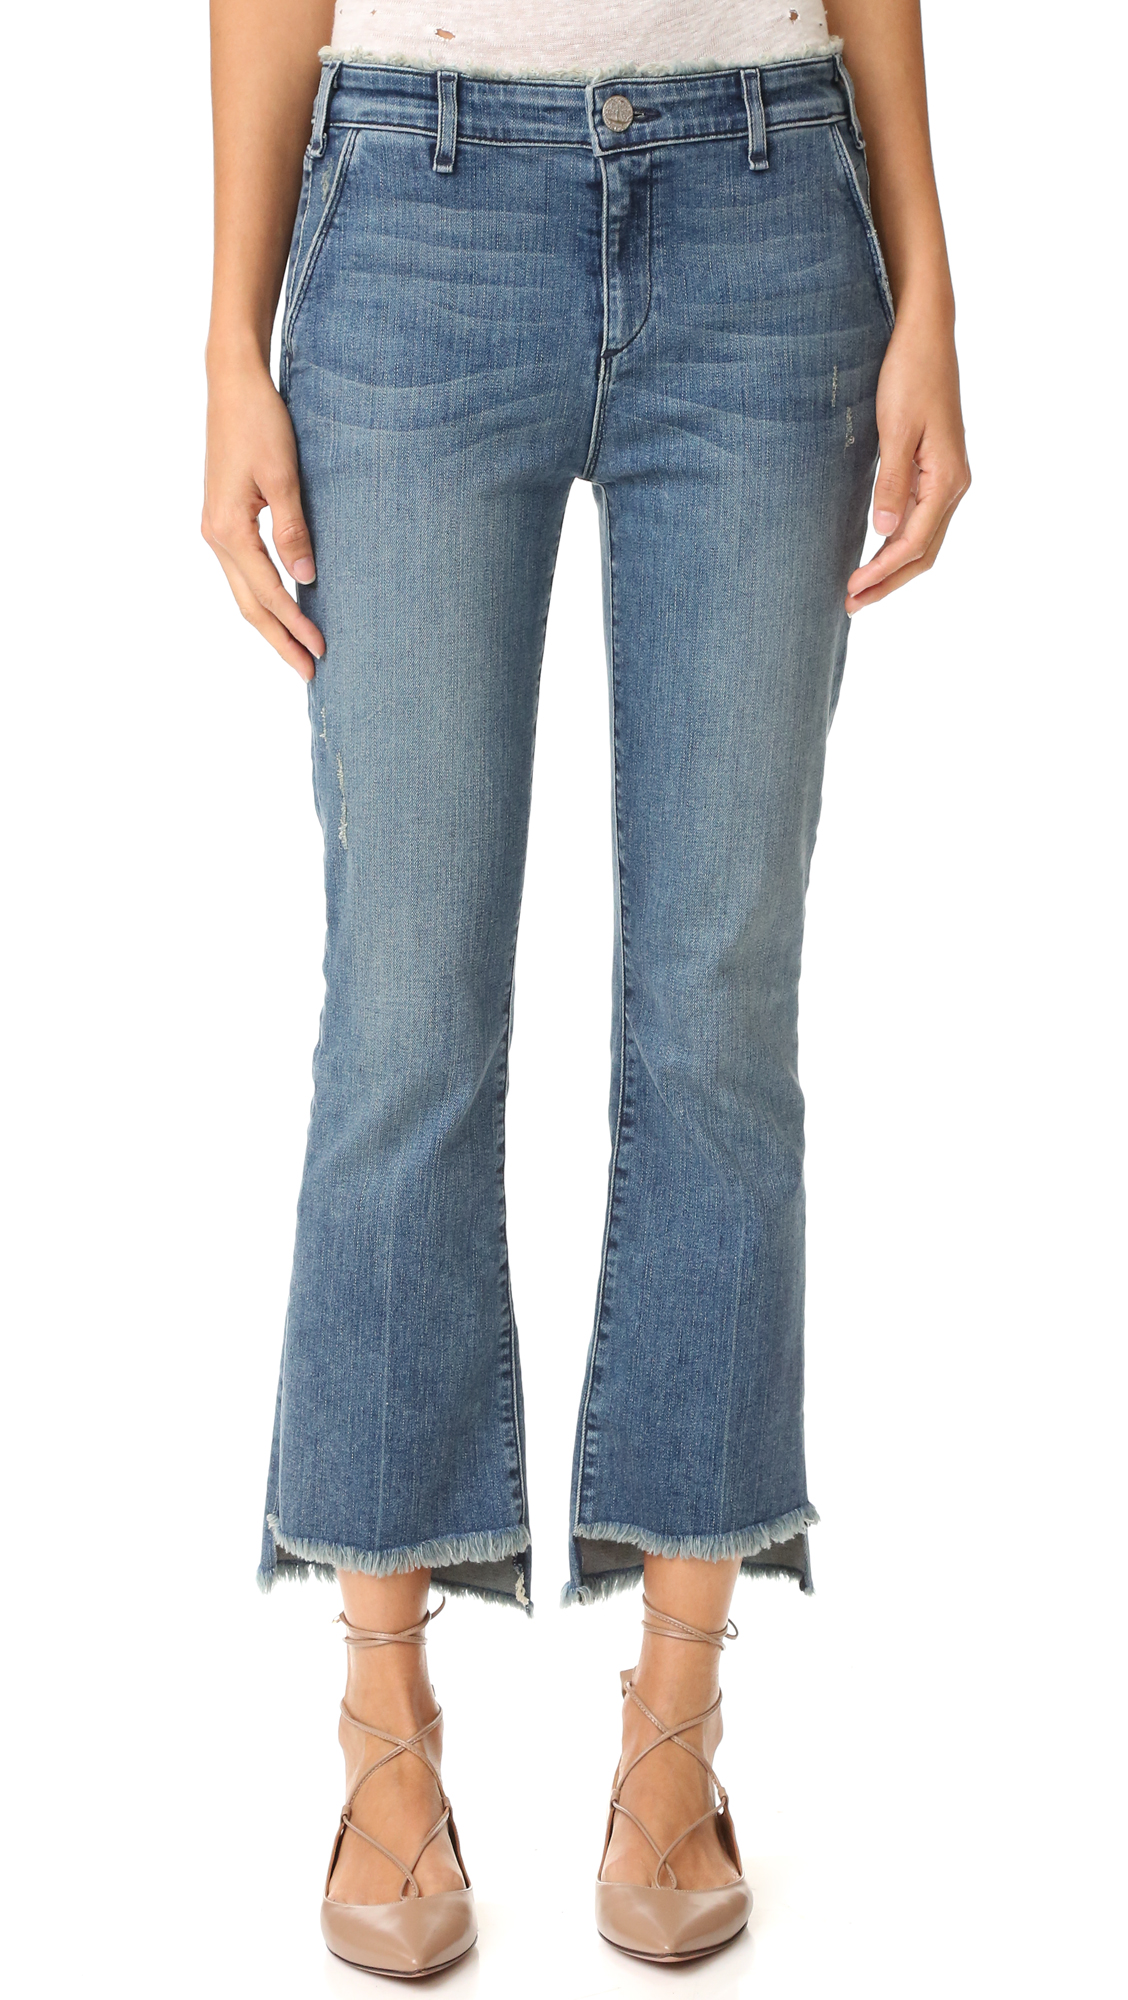 Scattered shreds and allover fading give these cropped McGuire Denim jeans an undone look. Frayed edges. 4 pockets. Button closure and zip fly. Fabric: Lightweight stretch denim. 92% cotton/6% elastomultiester polyester/2% elastane. Wash cold. Made in the USA.